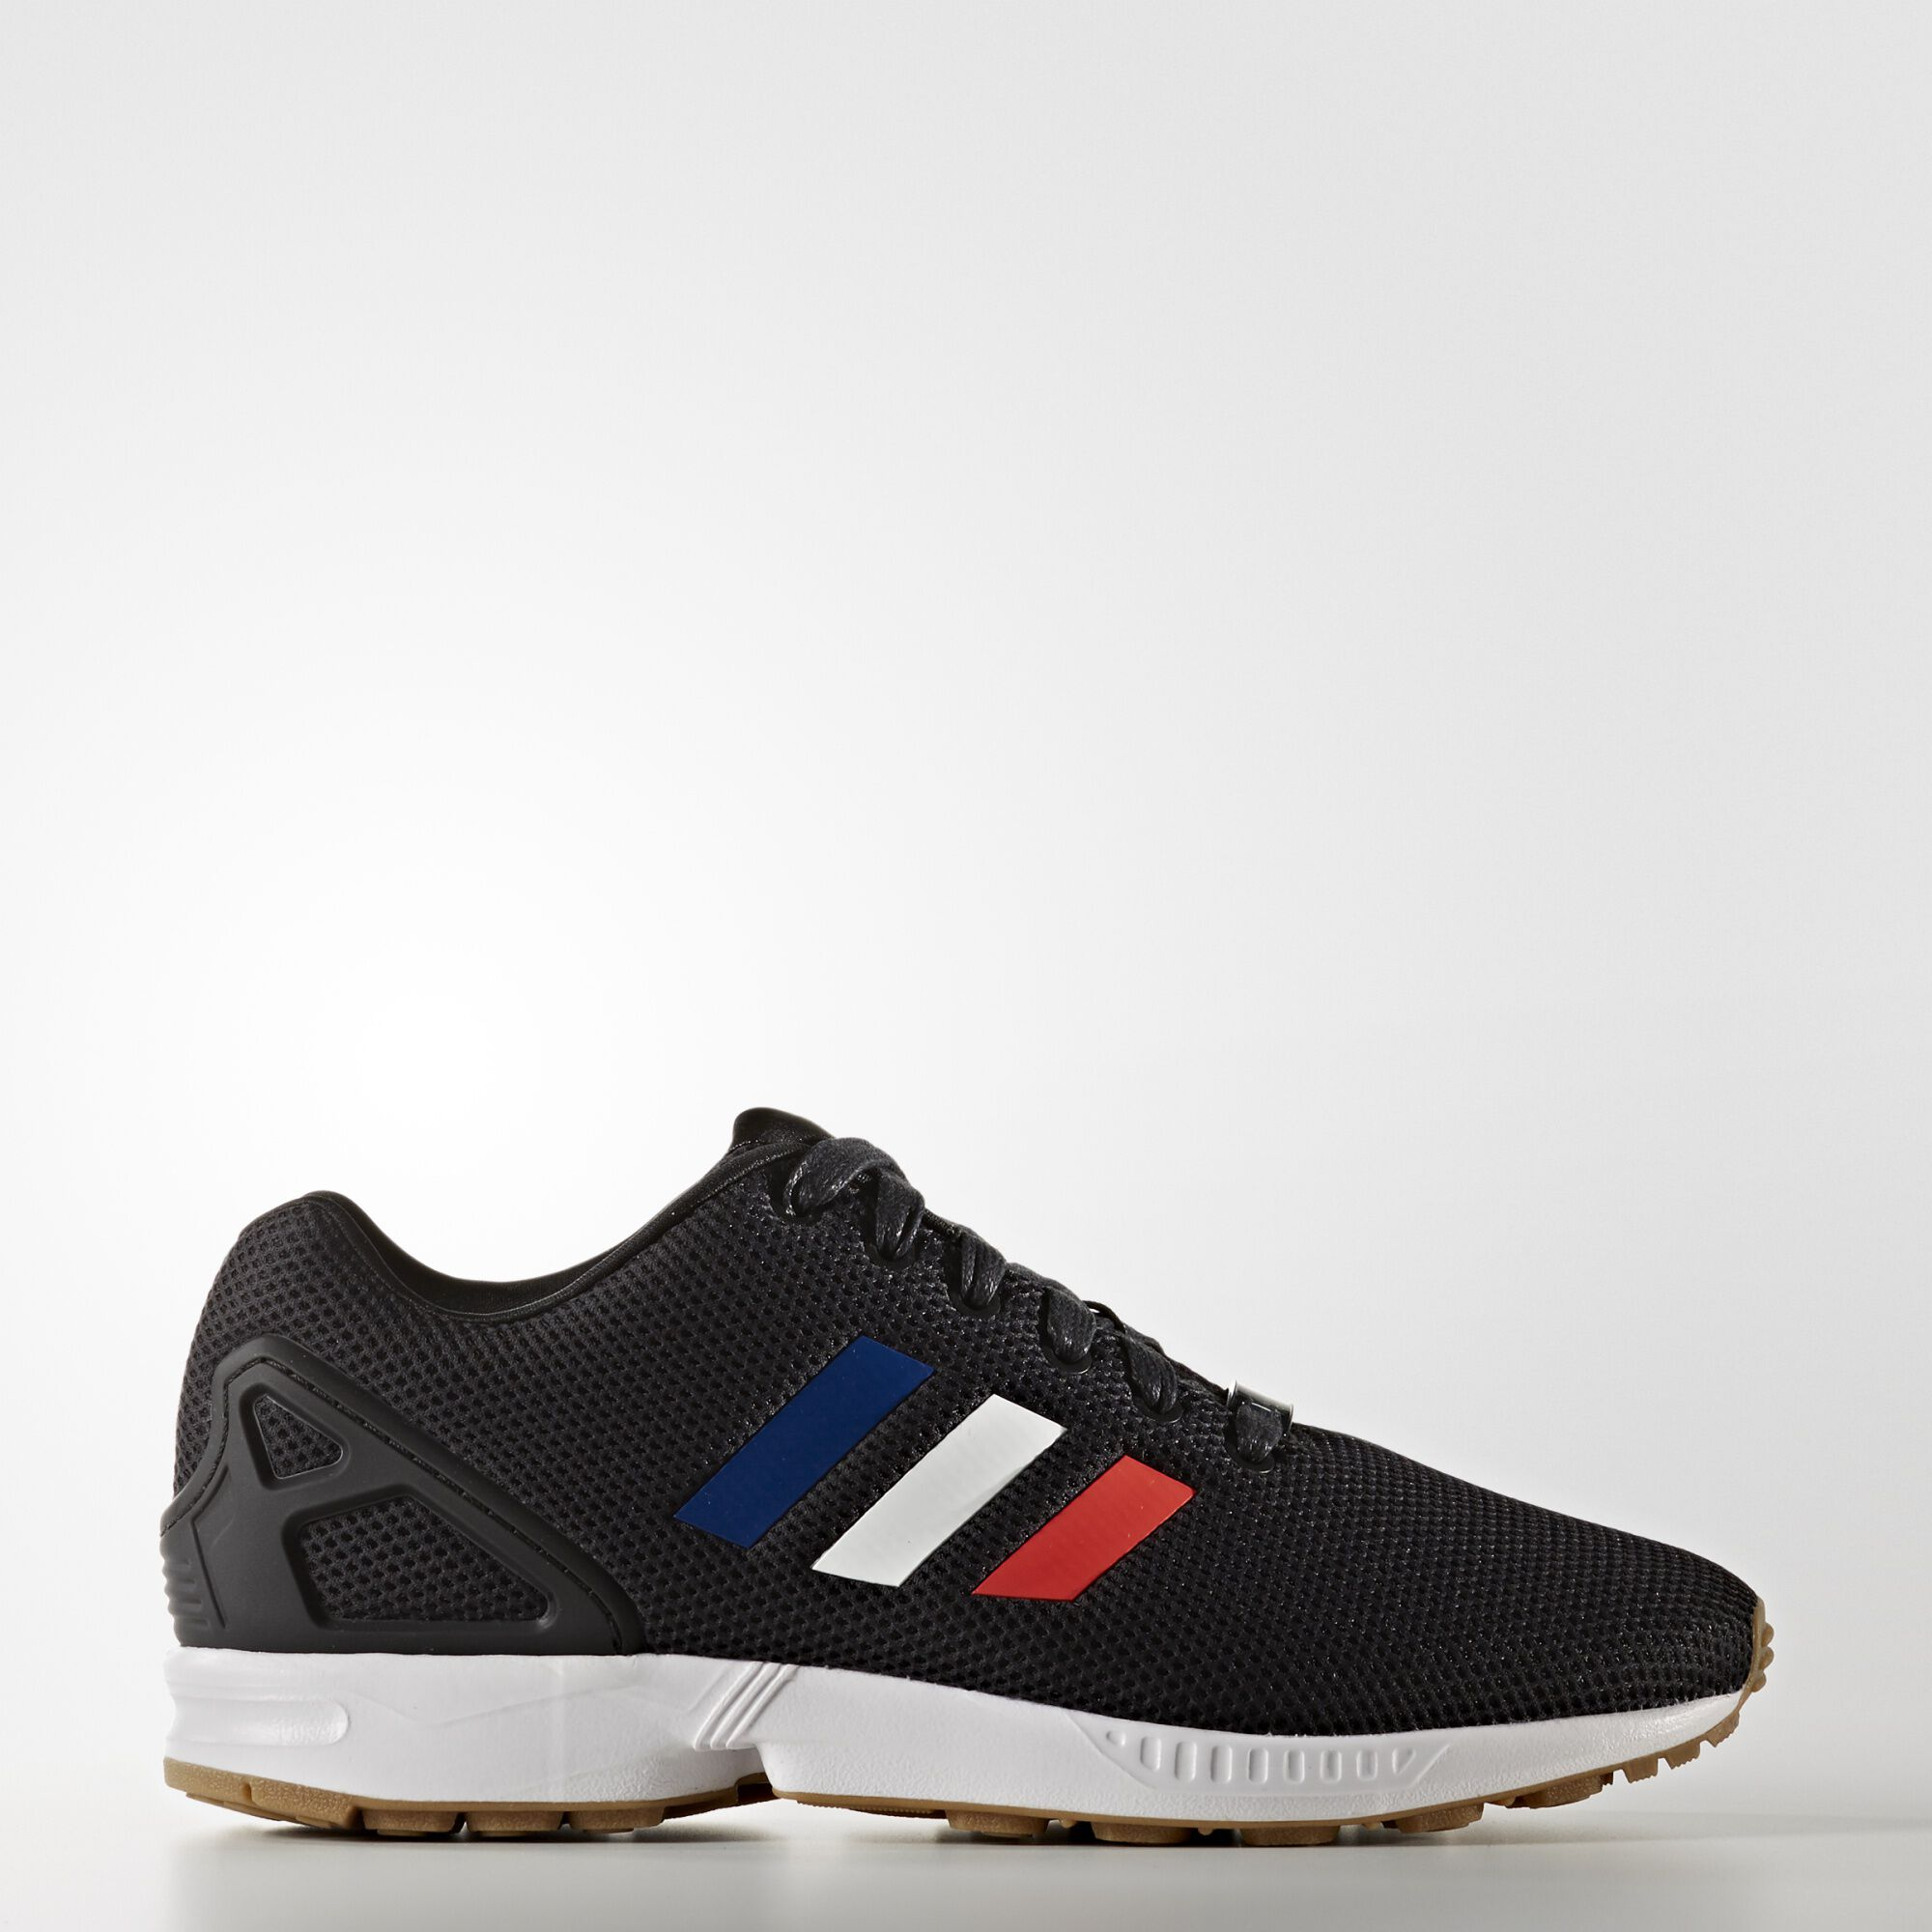 new styles 048a4 64fef adidas zx flux gold